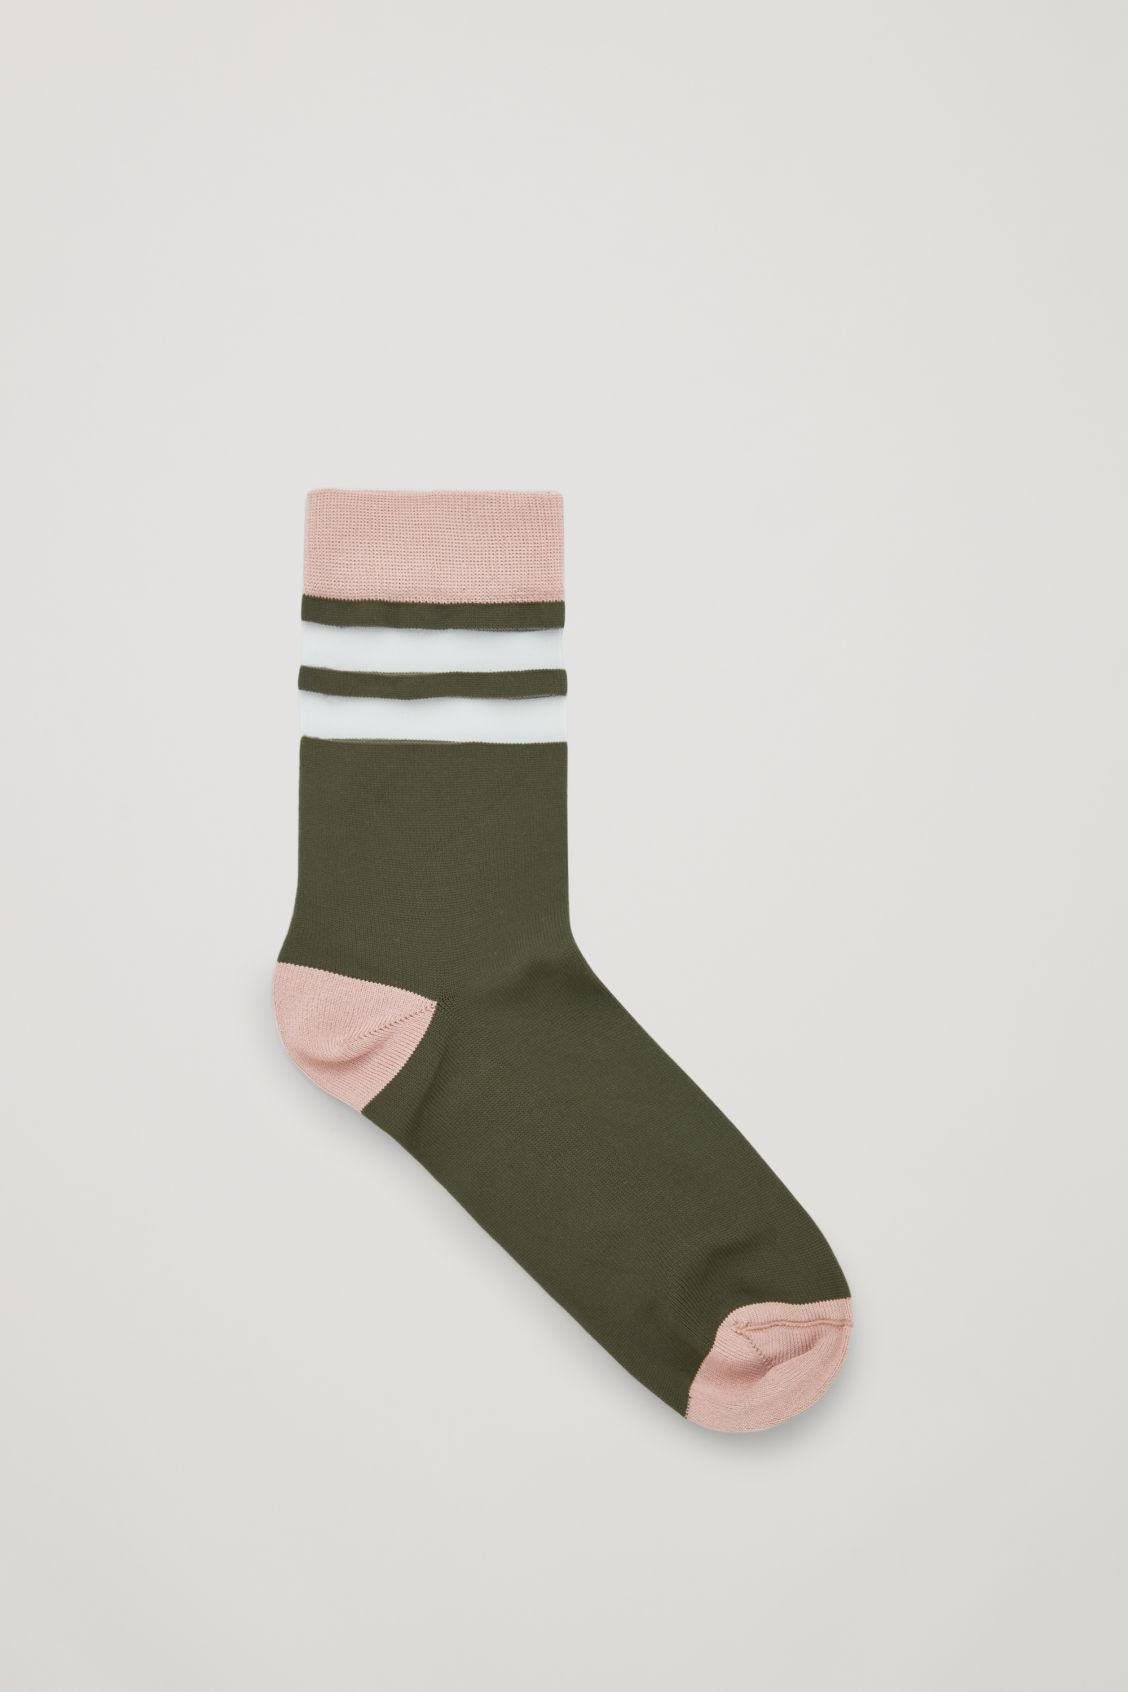 7b3586666c8c1 COS Sheer Striped Socks in Green - Lyst